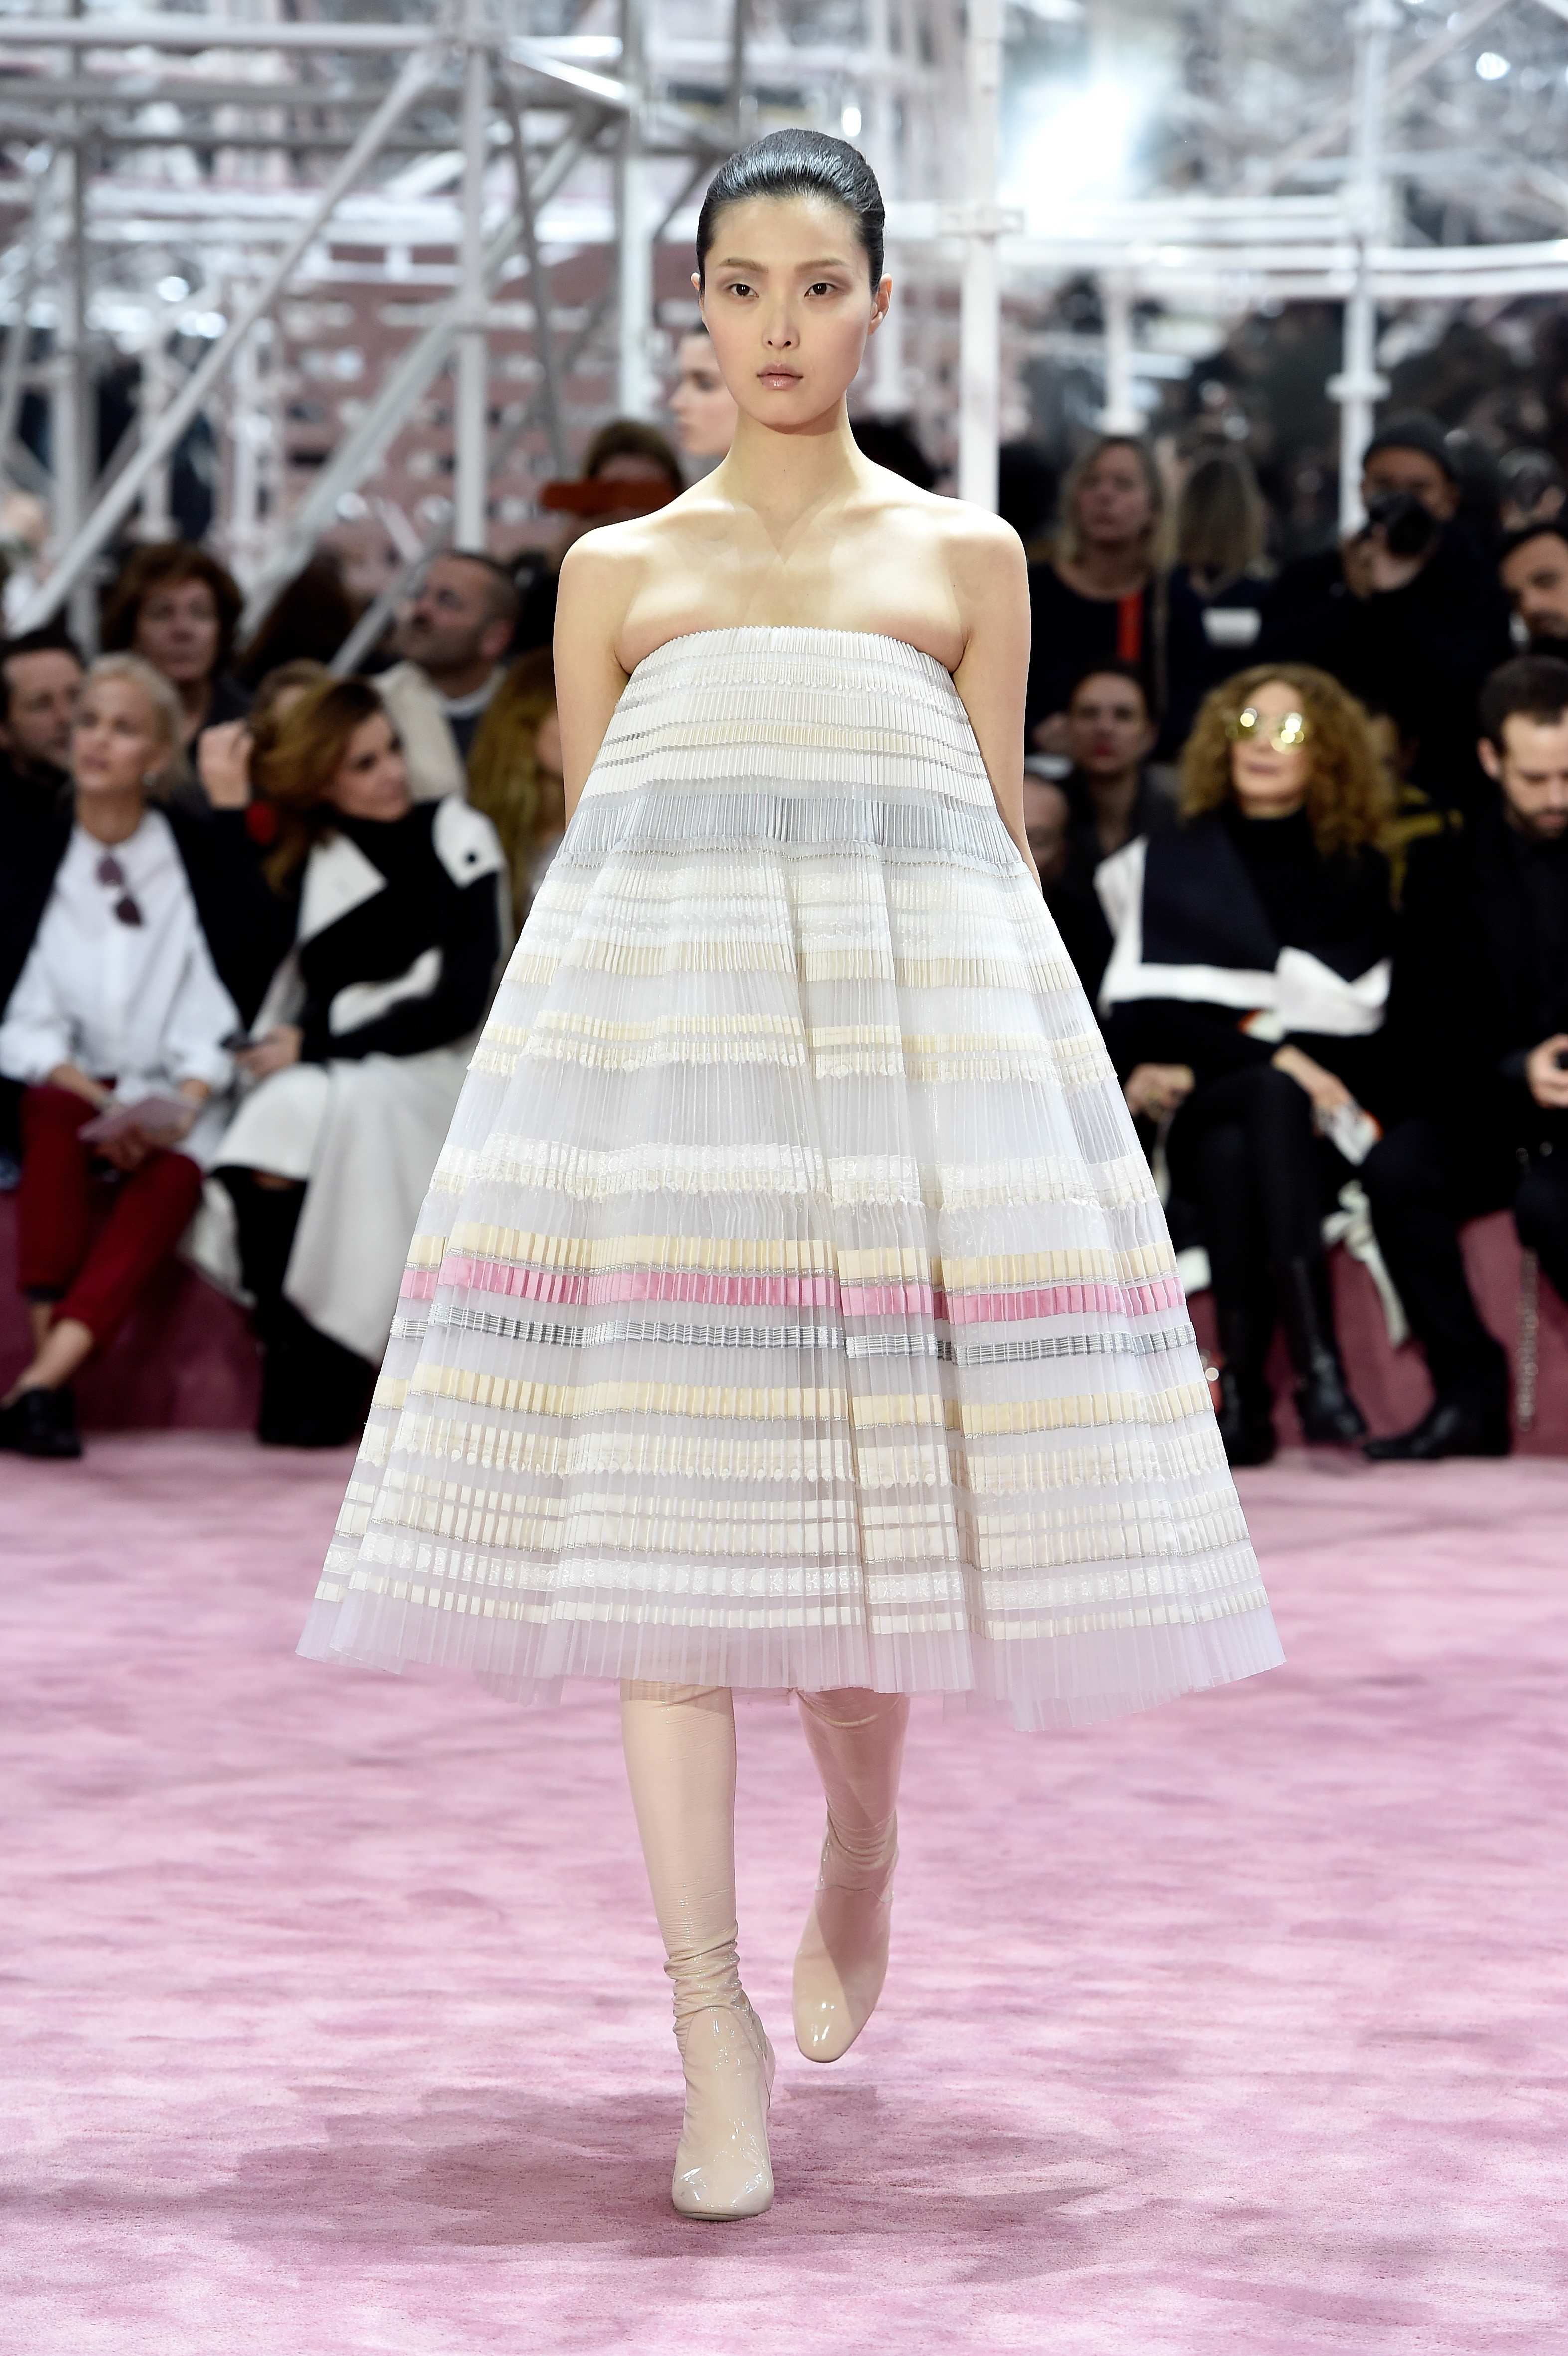 PARIS, FRANCE - JANUARY 26: A model walks the runway during the Christian Dior show as part of Paris Fashion Week Haute Couture Spring/Summer 2015 on January 26, 2015 in Paris, France. (Photo by Pascal Le Segretain/Getty Images)